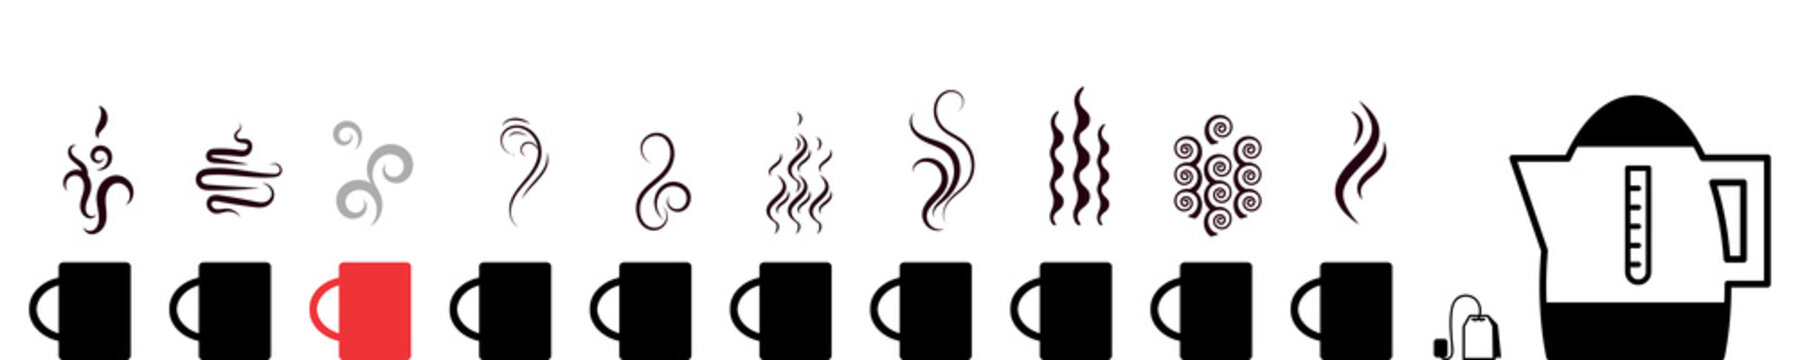 Collection of hot drinks icon with steam symbols isolated